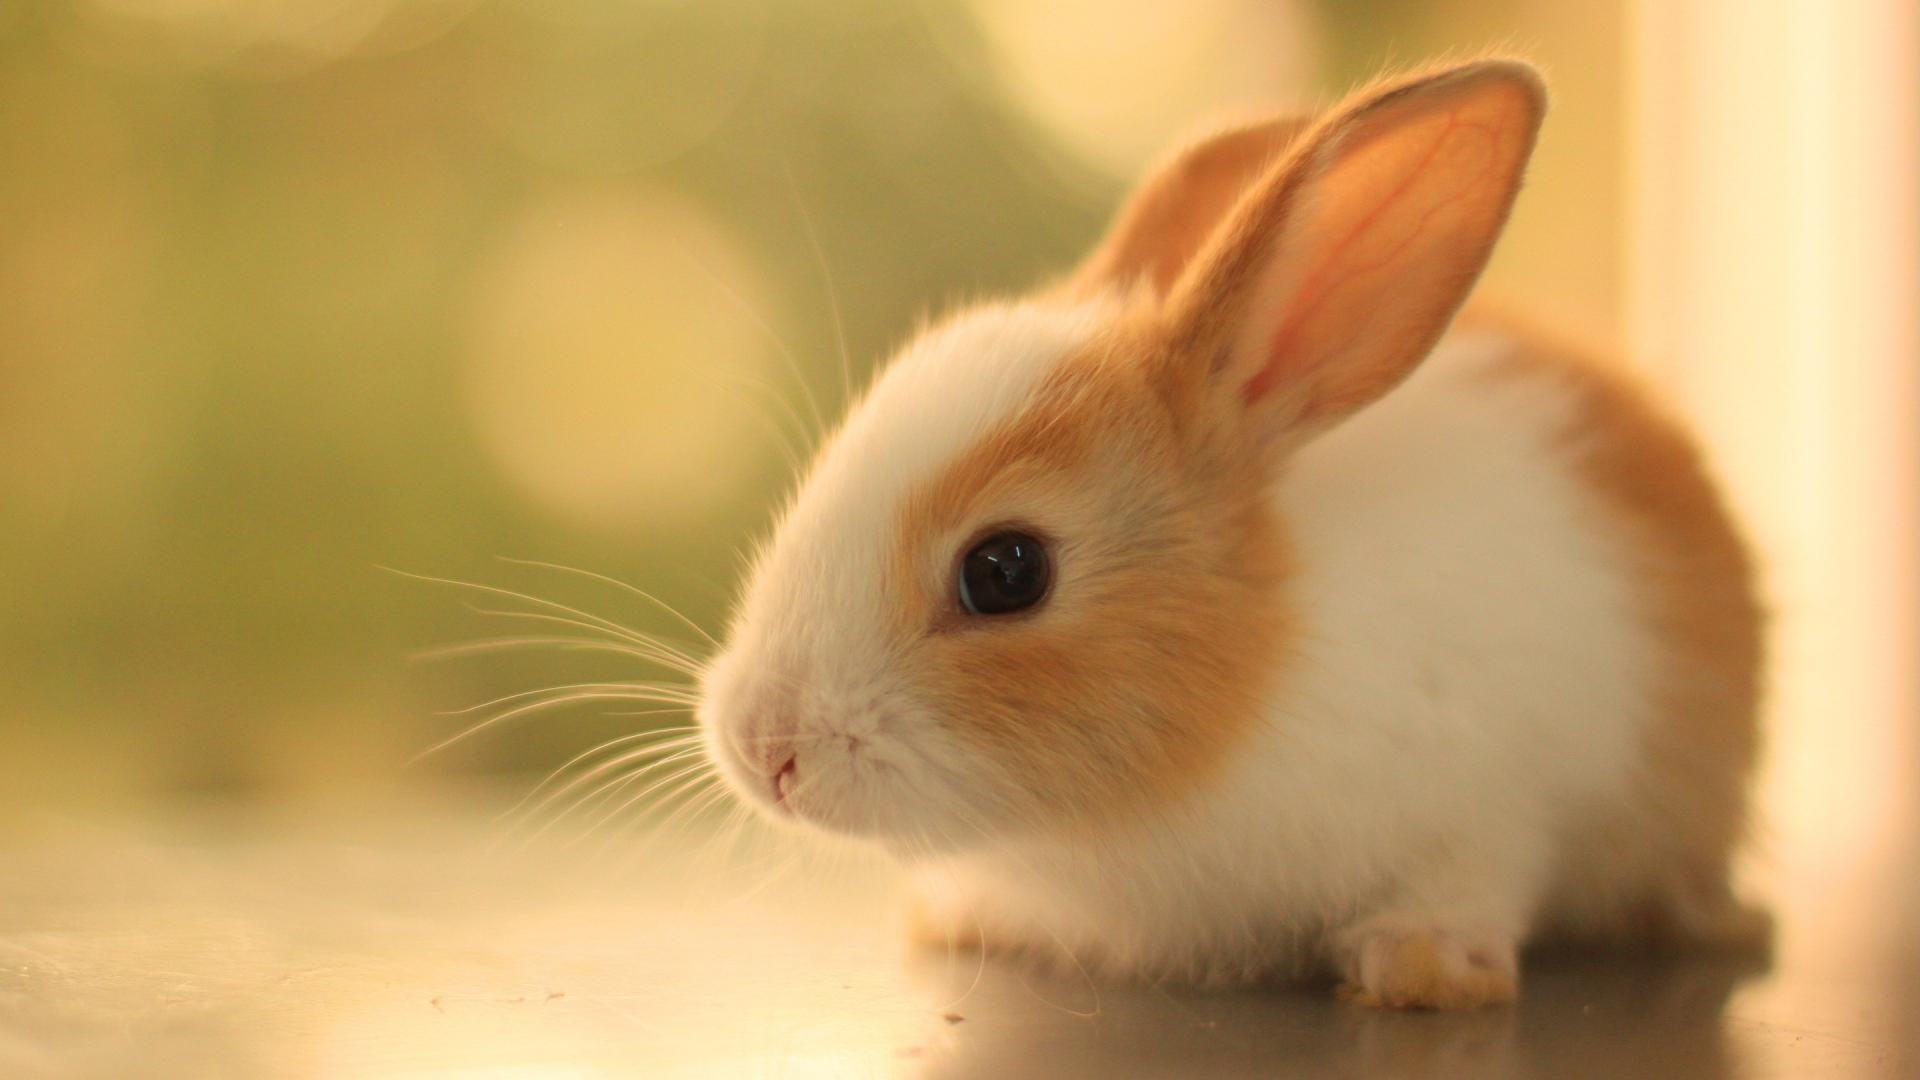 Cute Bunny Wallpapers   Top Cute Bunny Backgrounds 1920x1080